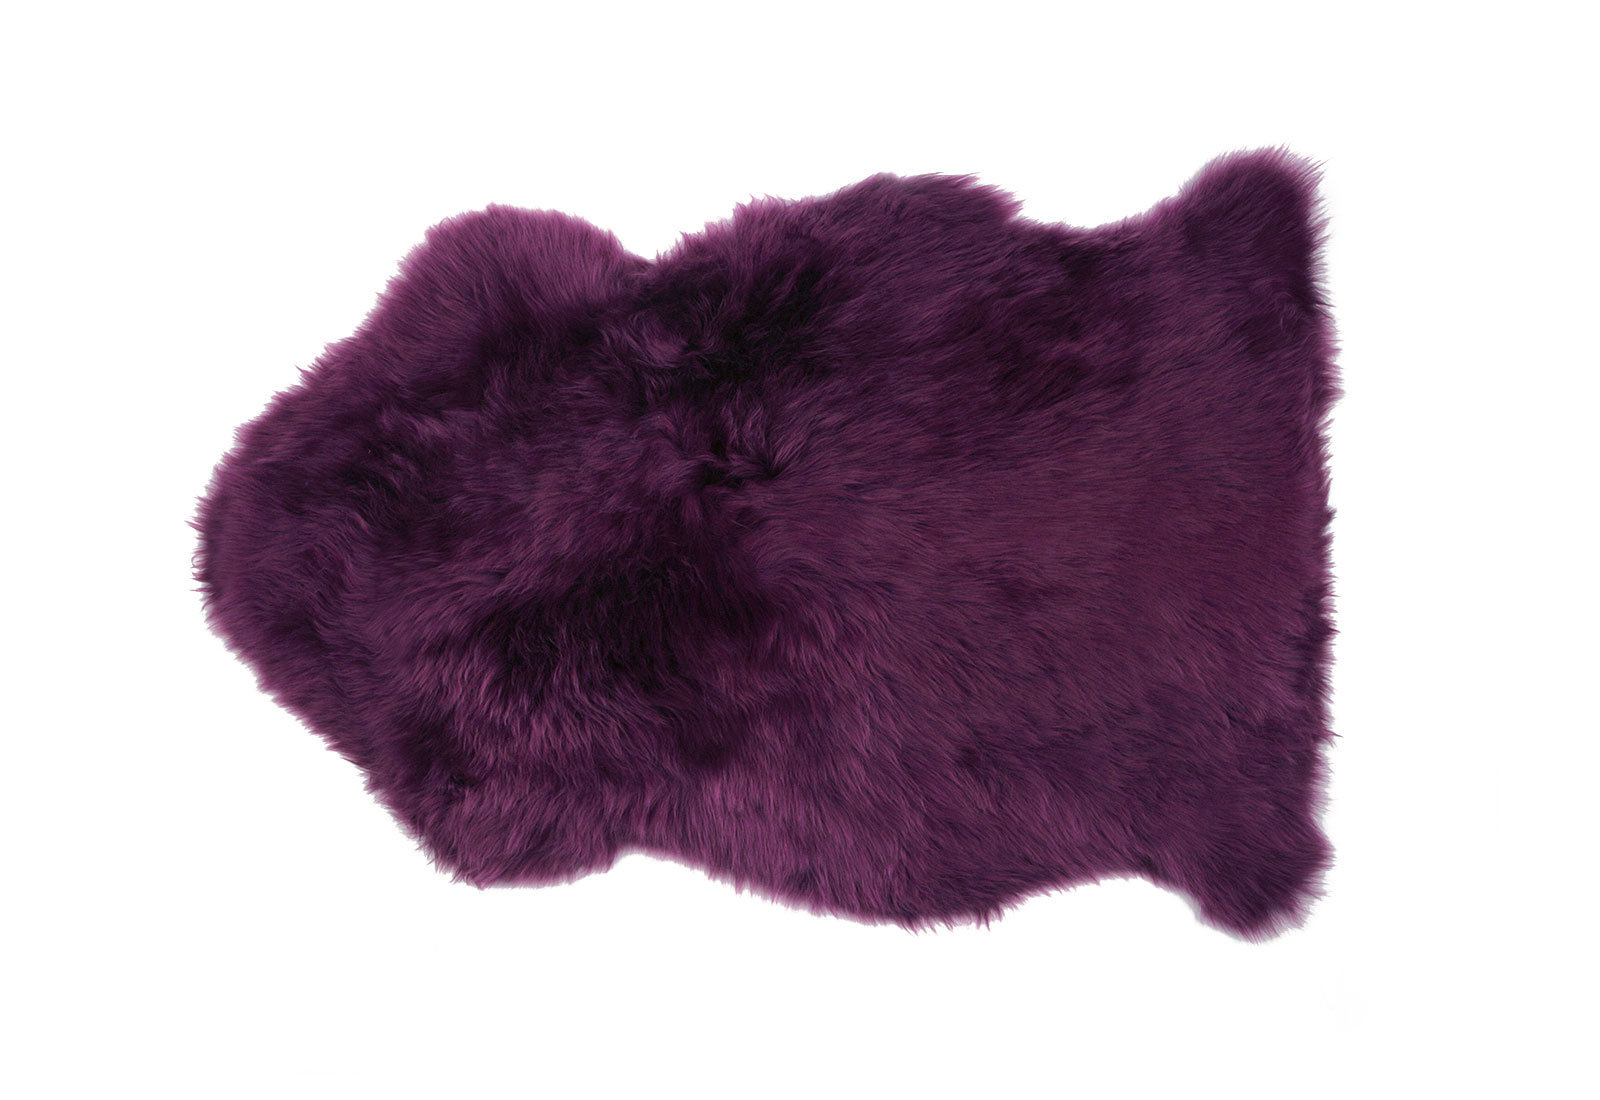 Plum Purple Sheepskin Fur Rug